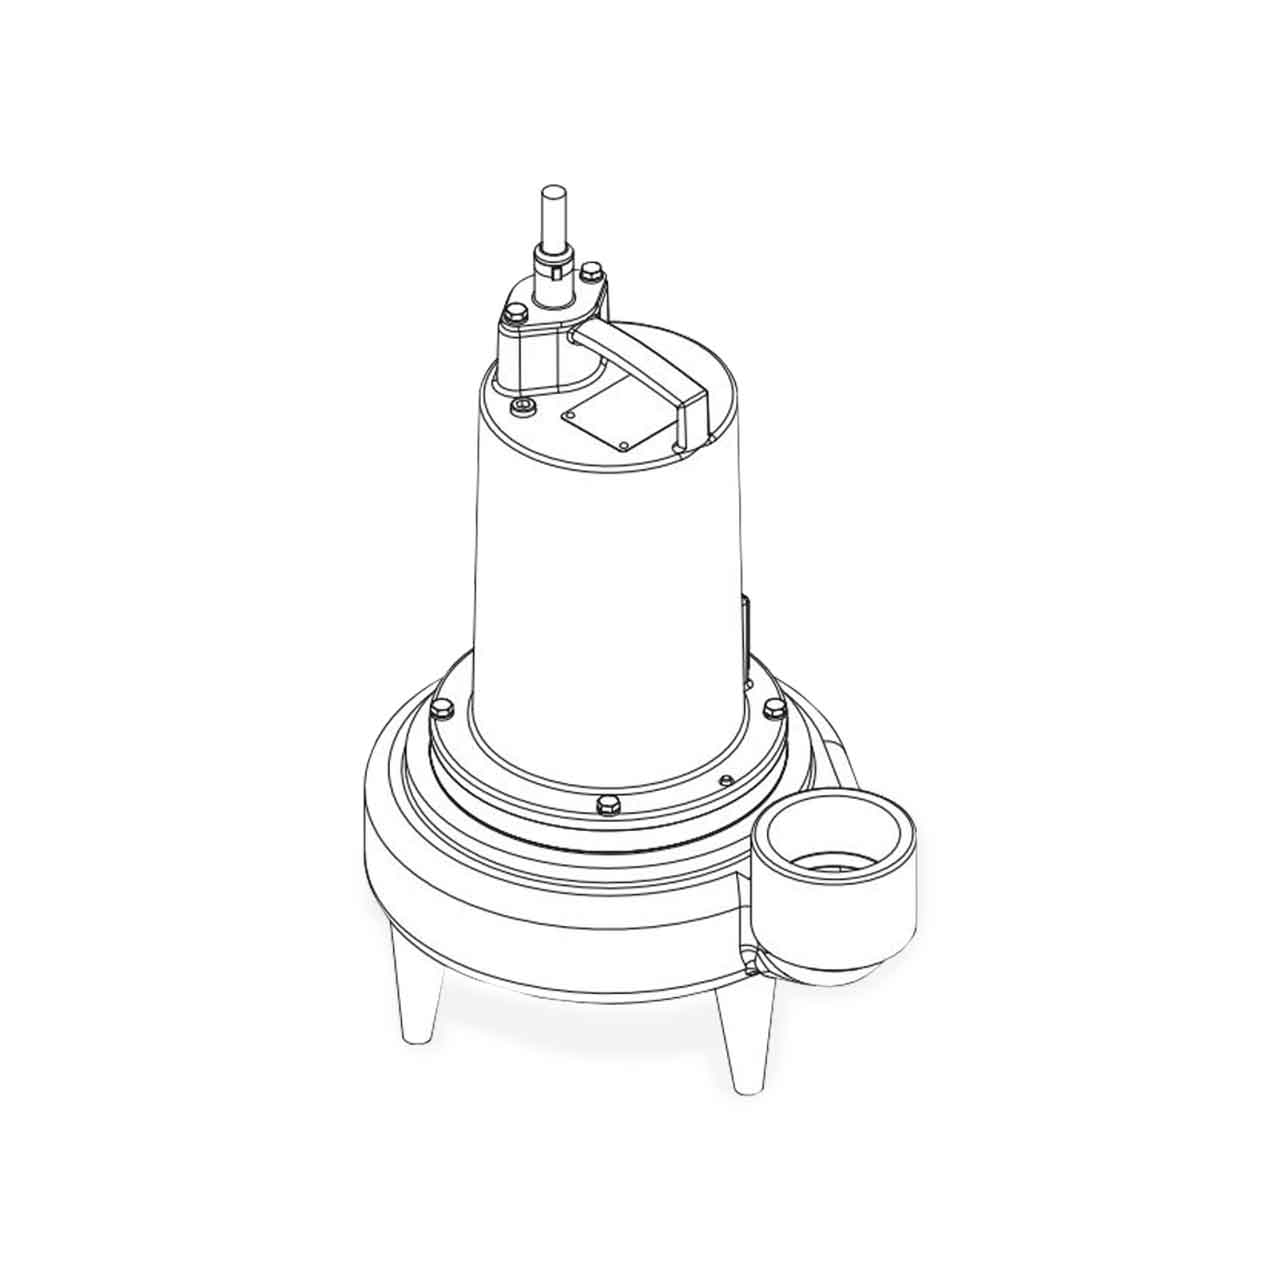 hight resolution of barnes barnes 3se1594l submersible sewage ejector pump 1 5 hp 200 230v 3ph 30 cord manual brn132730